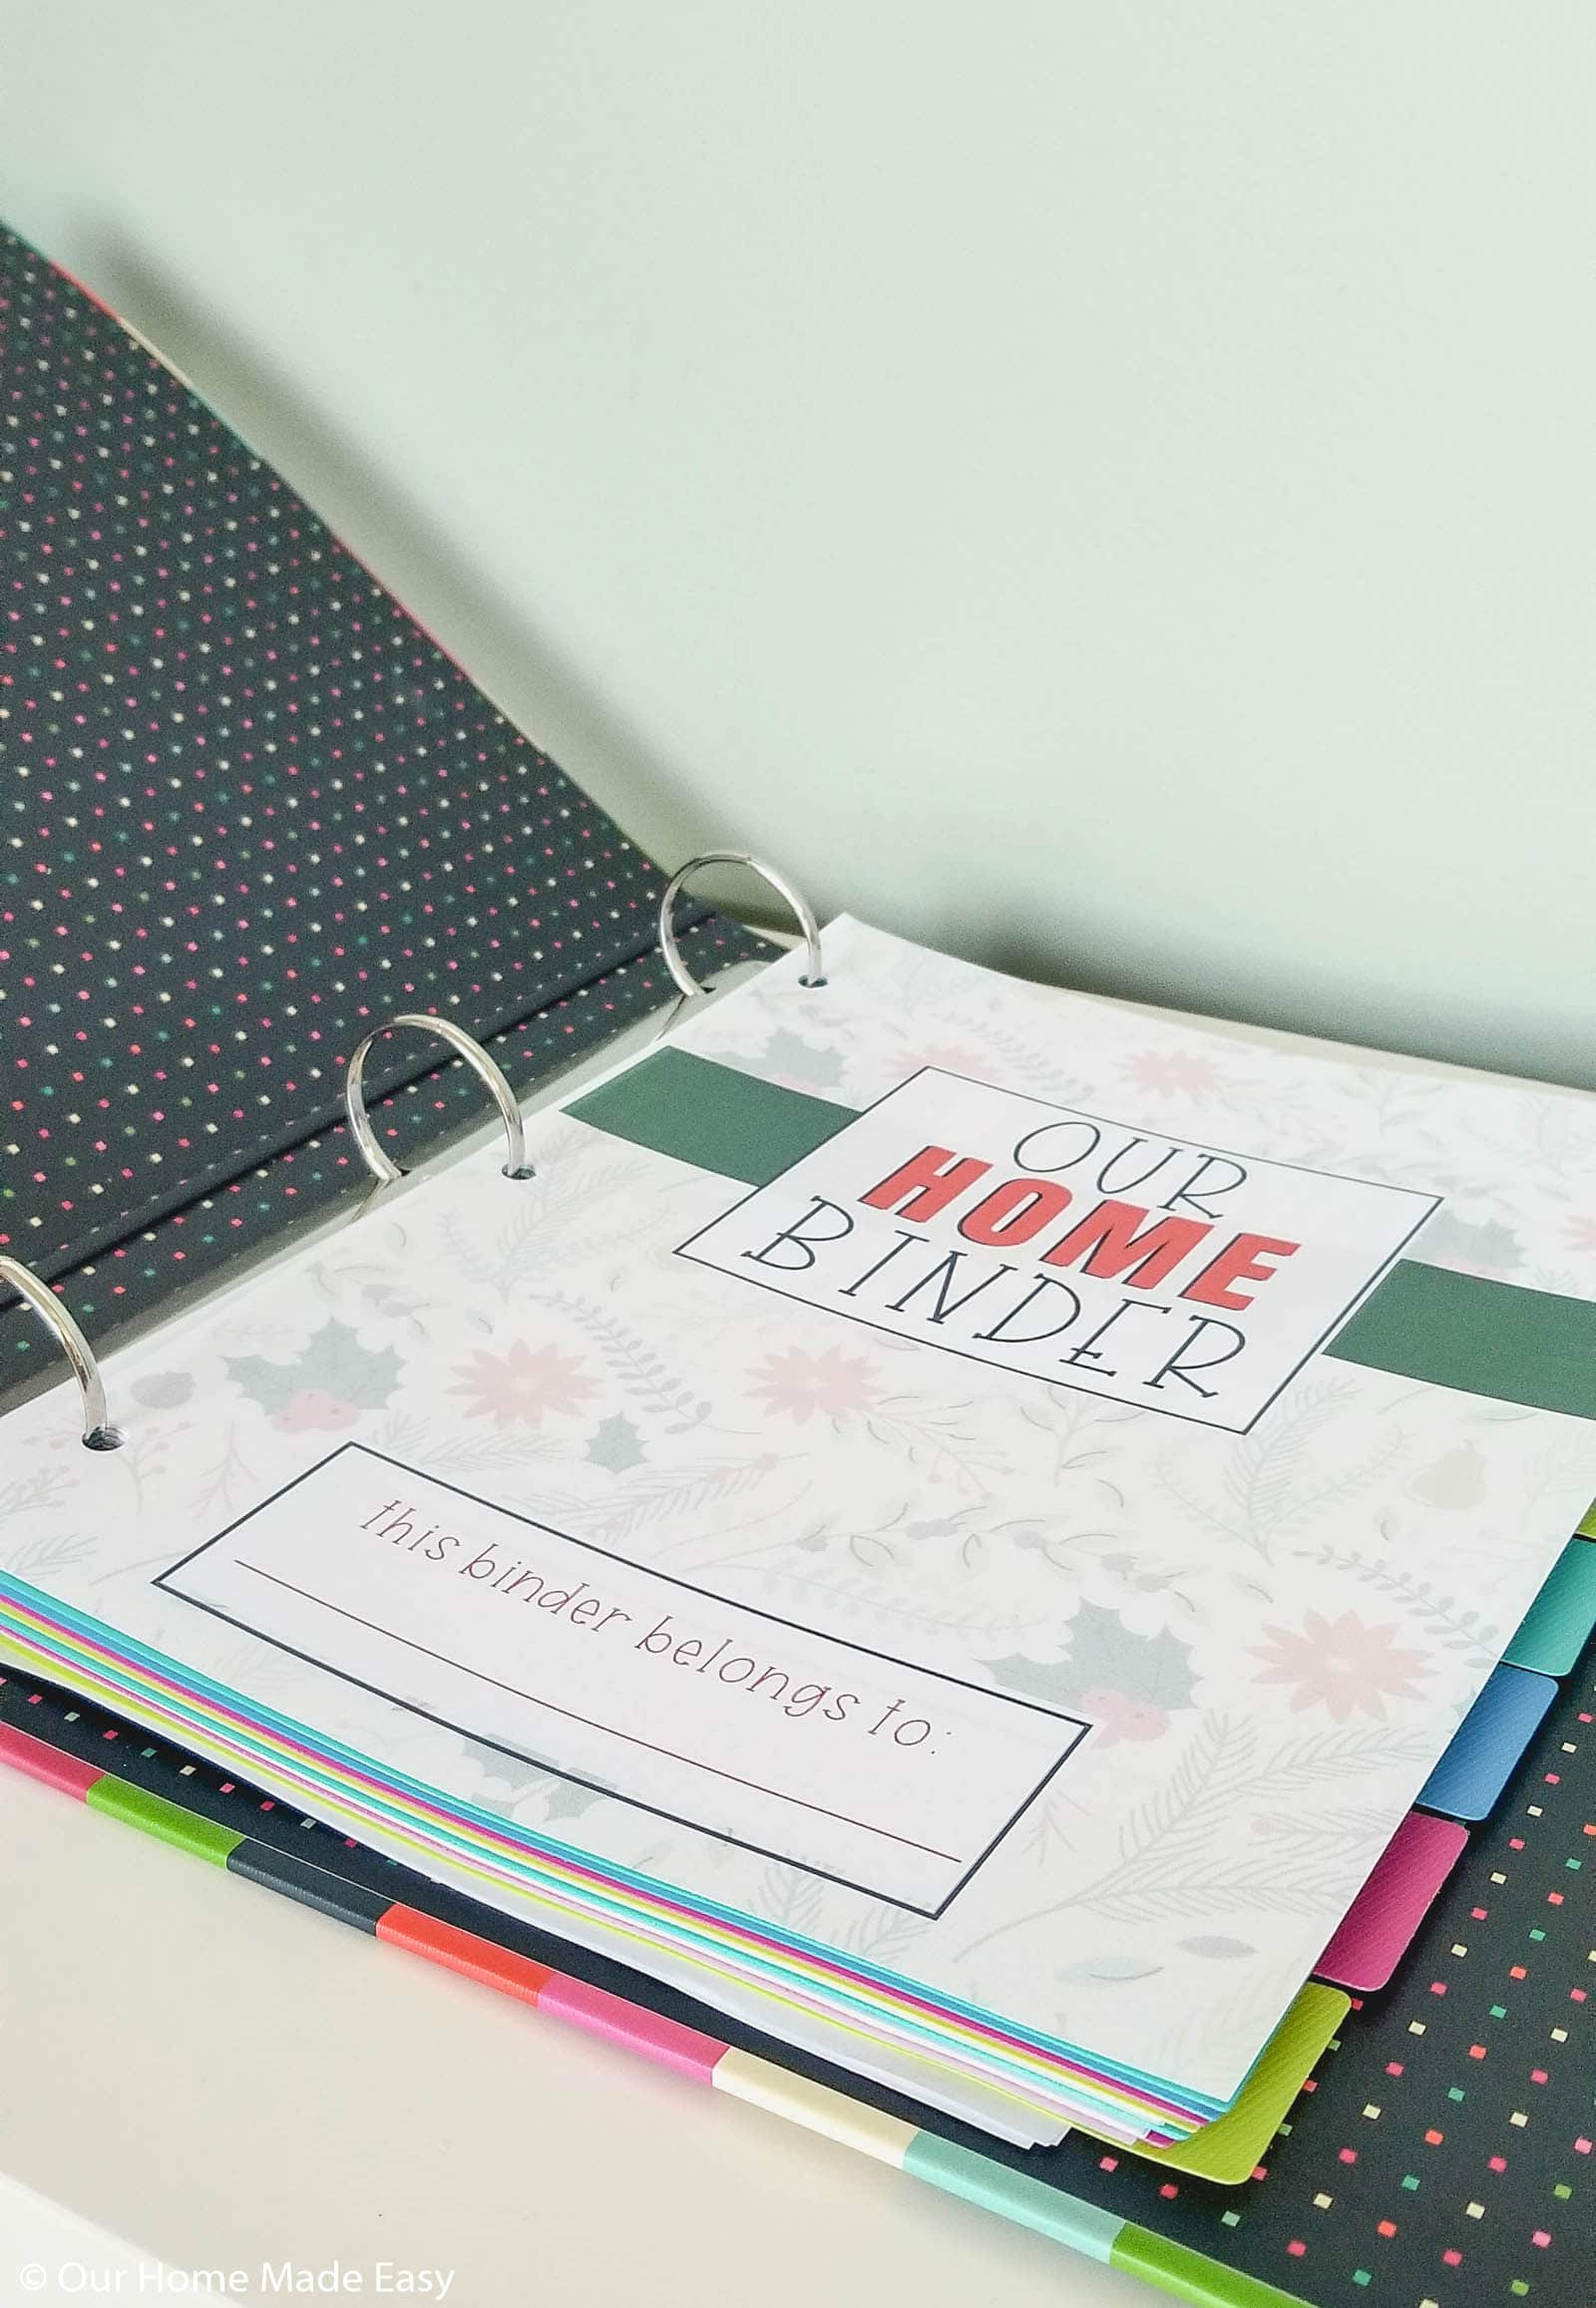 These Holiday Home Binder covers are a great way to update your Home Binder for the holiday season